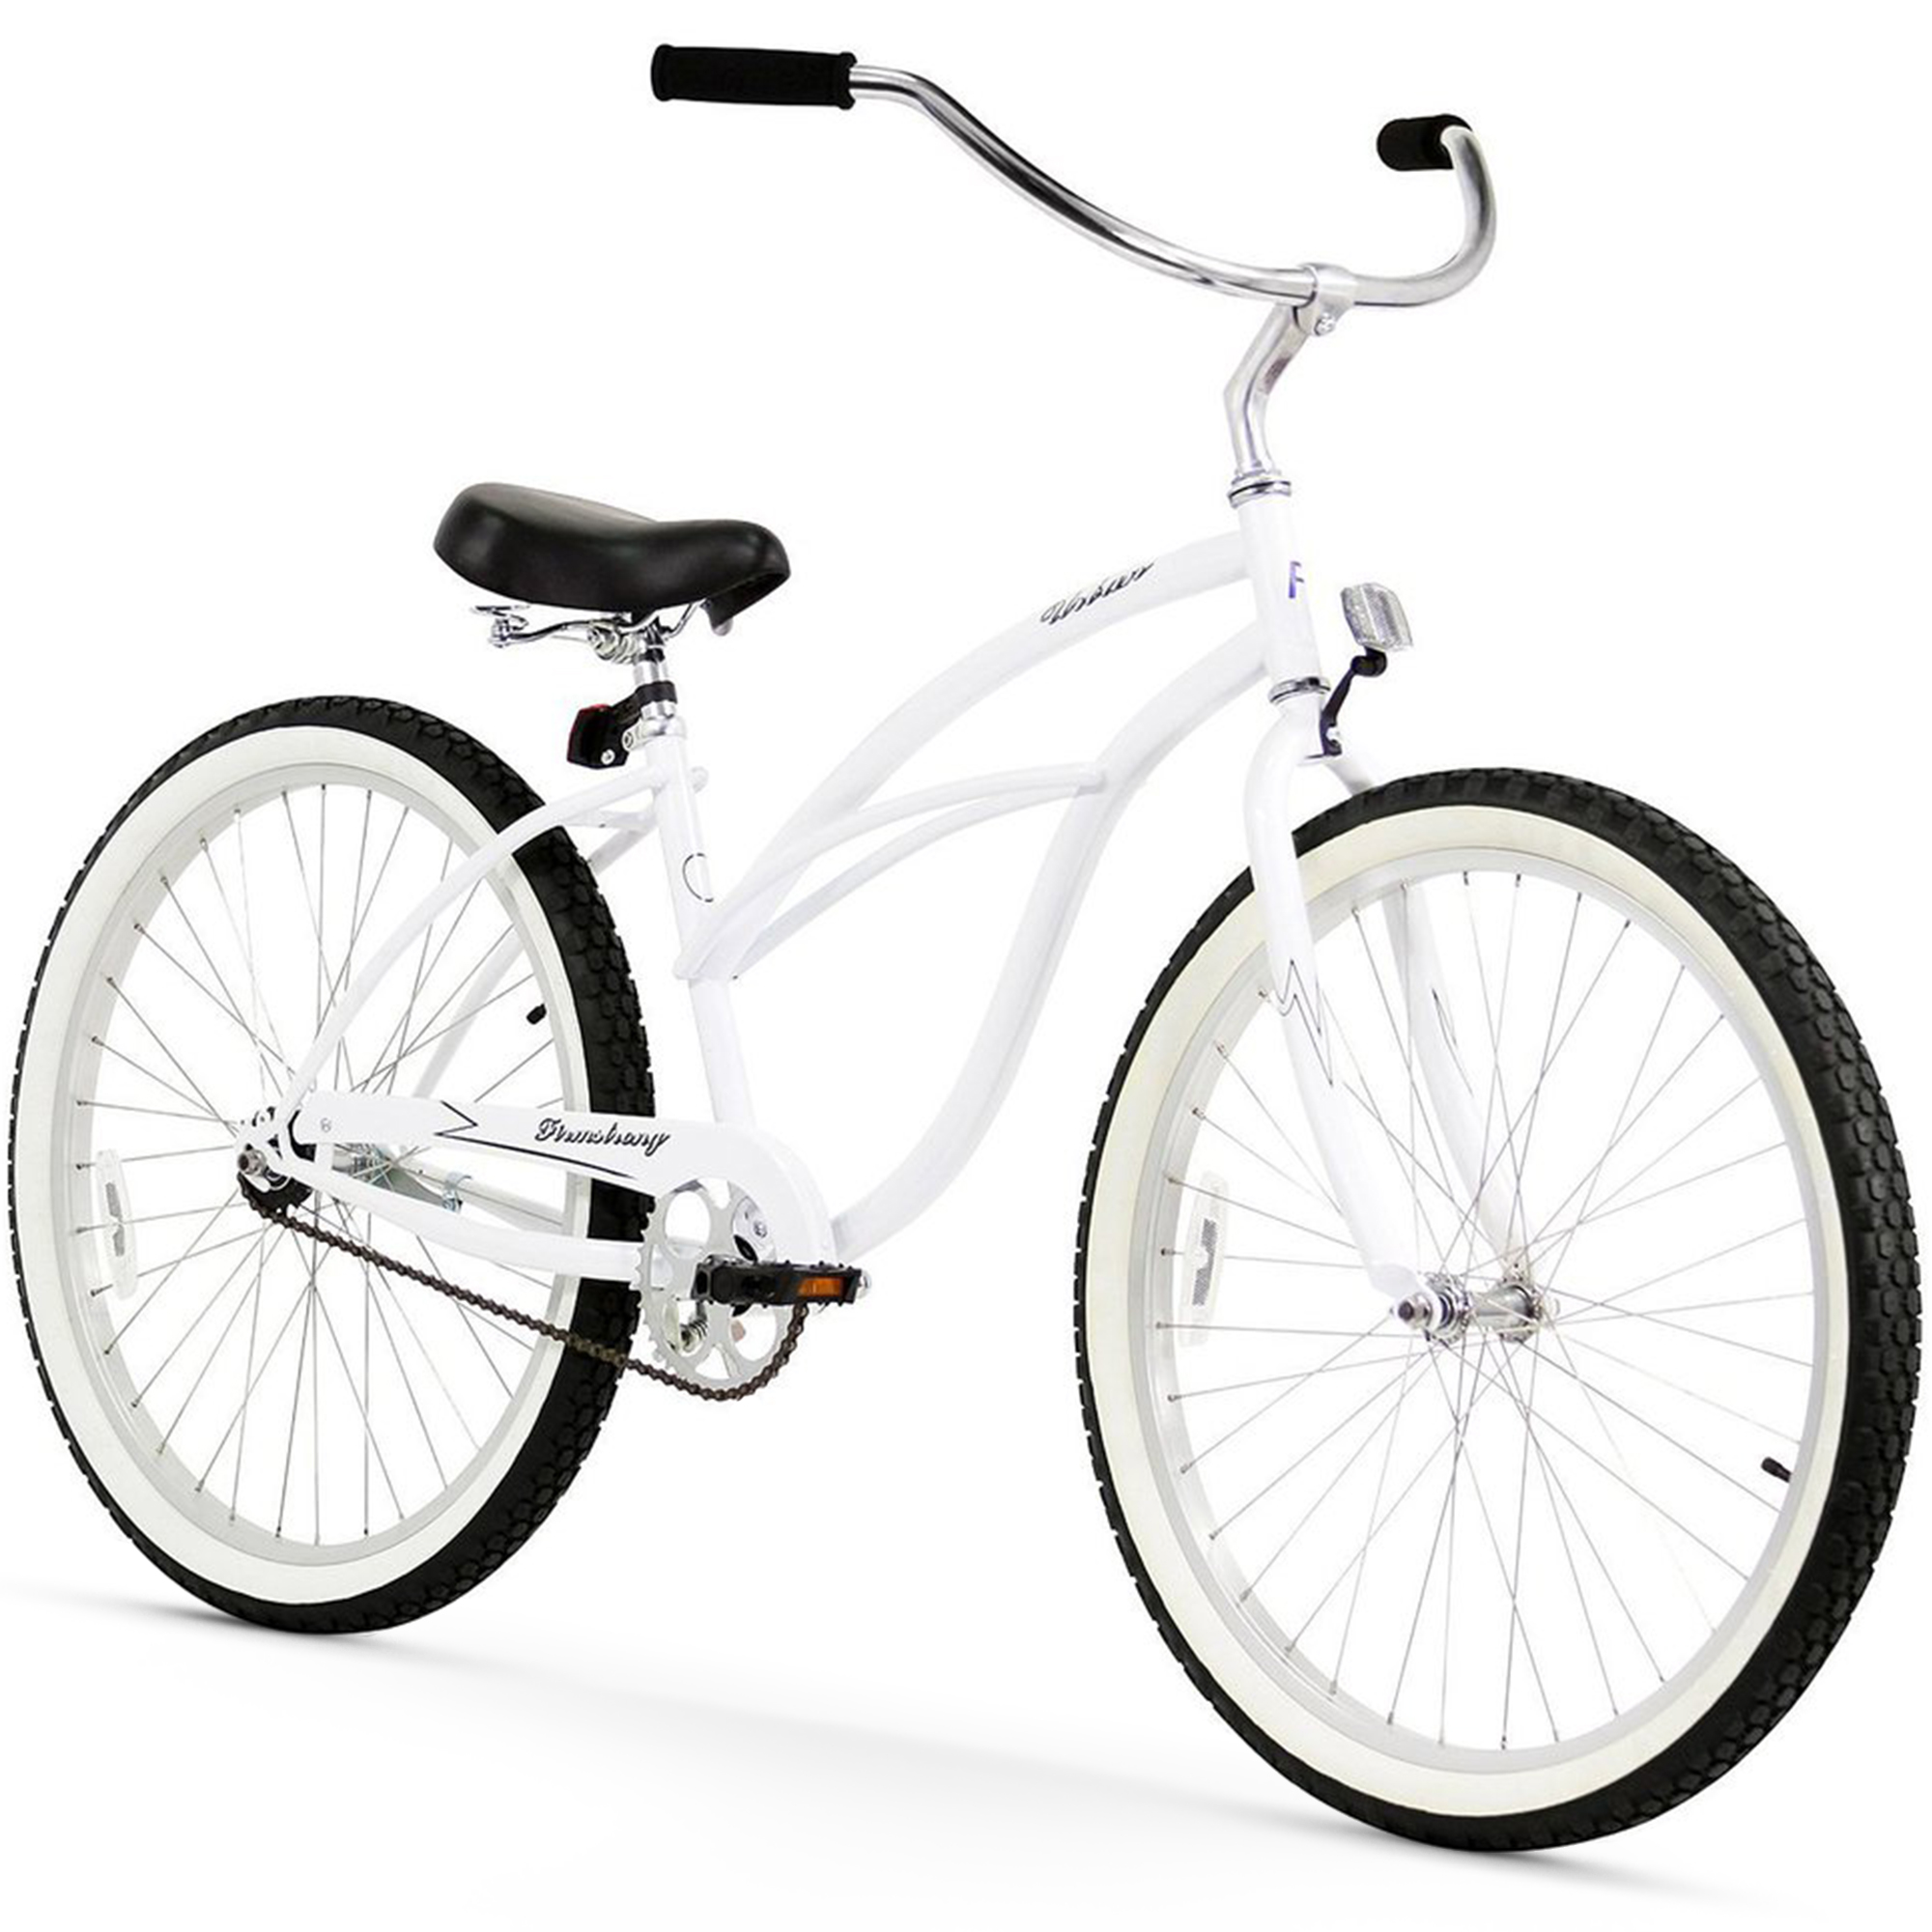 "Firmstrong 26"" Women's Urban Lady Beach Cruiser Bicycle, 1, 3 and 7 Speed"